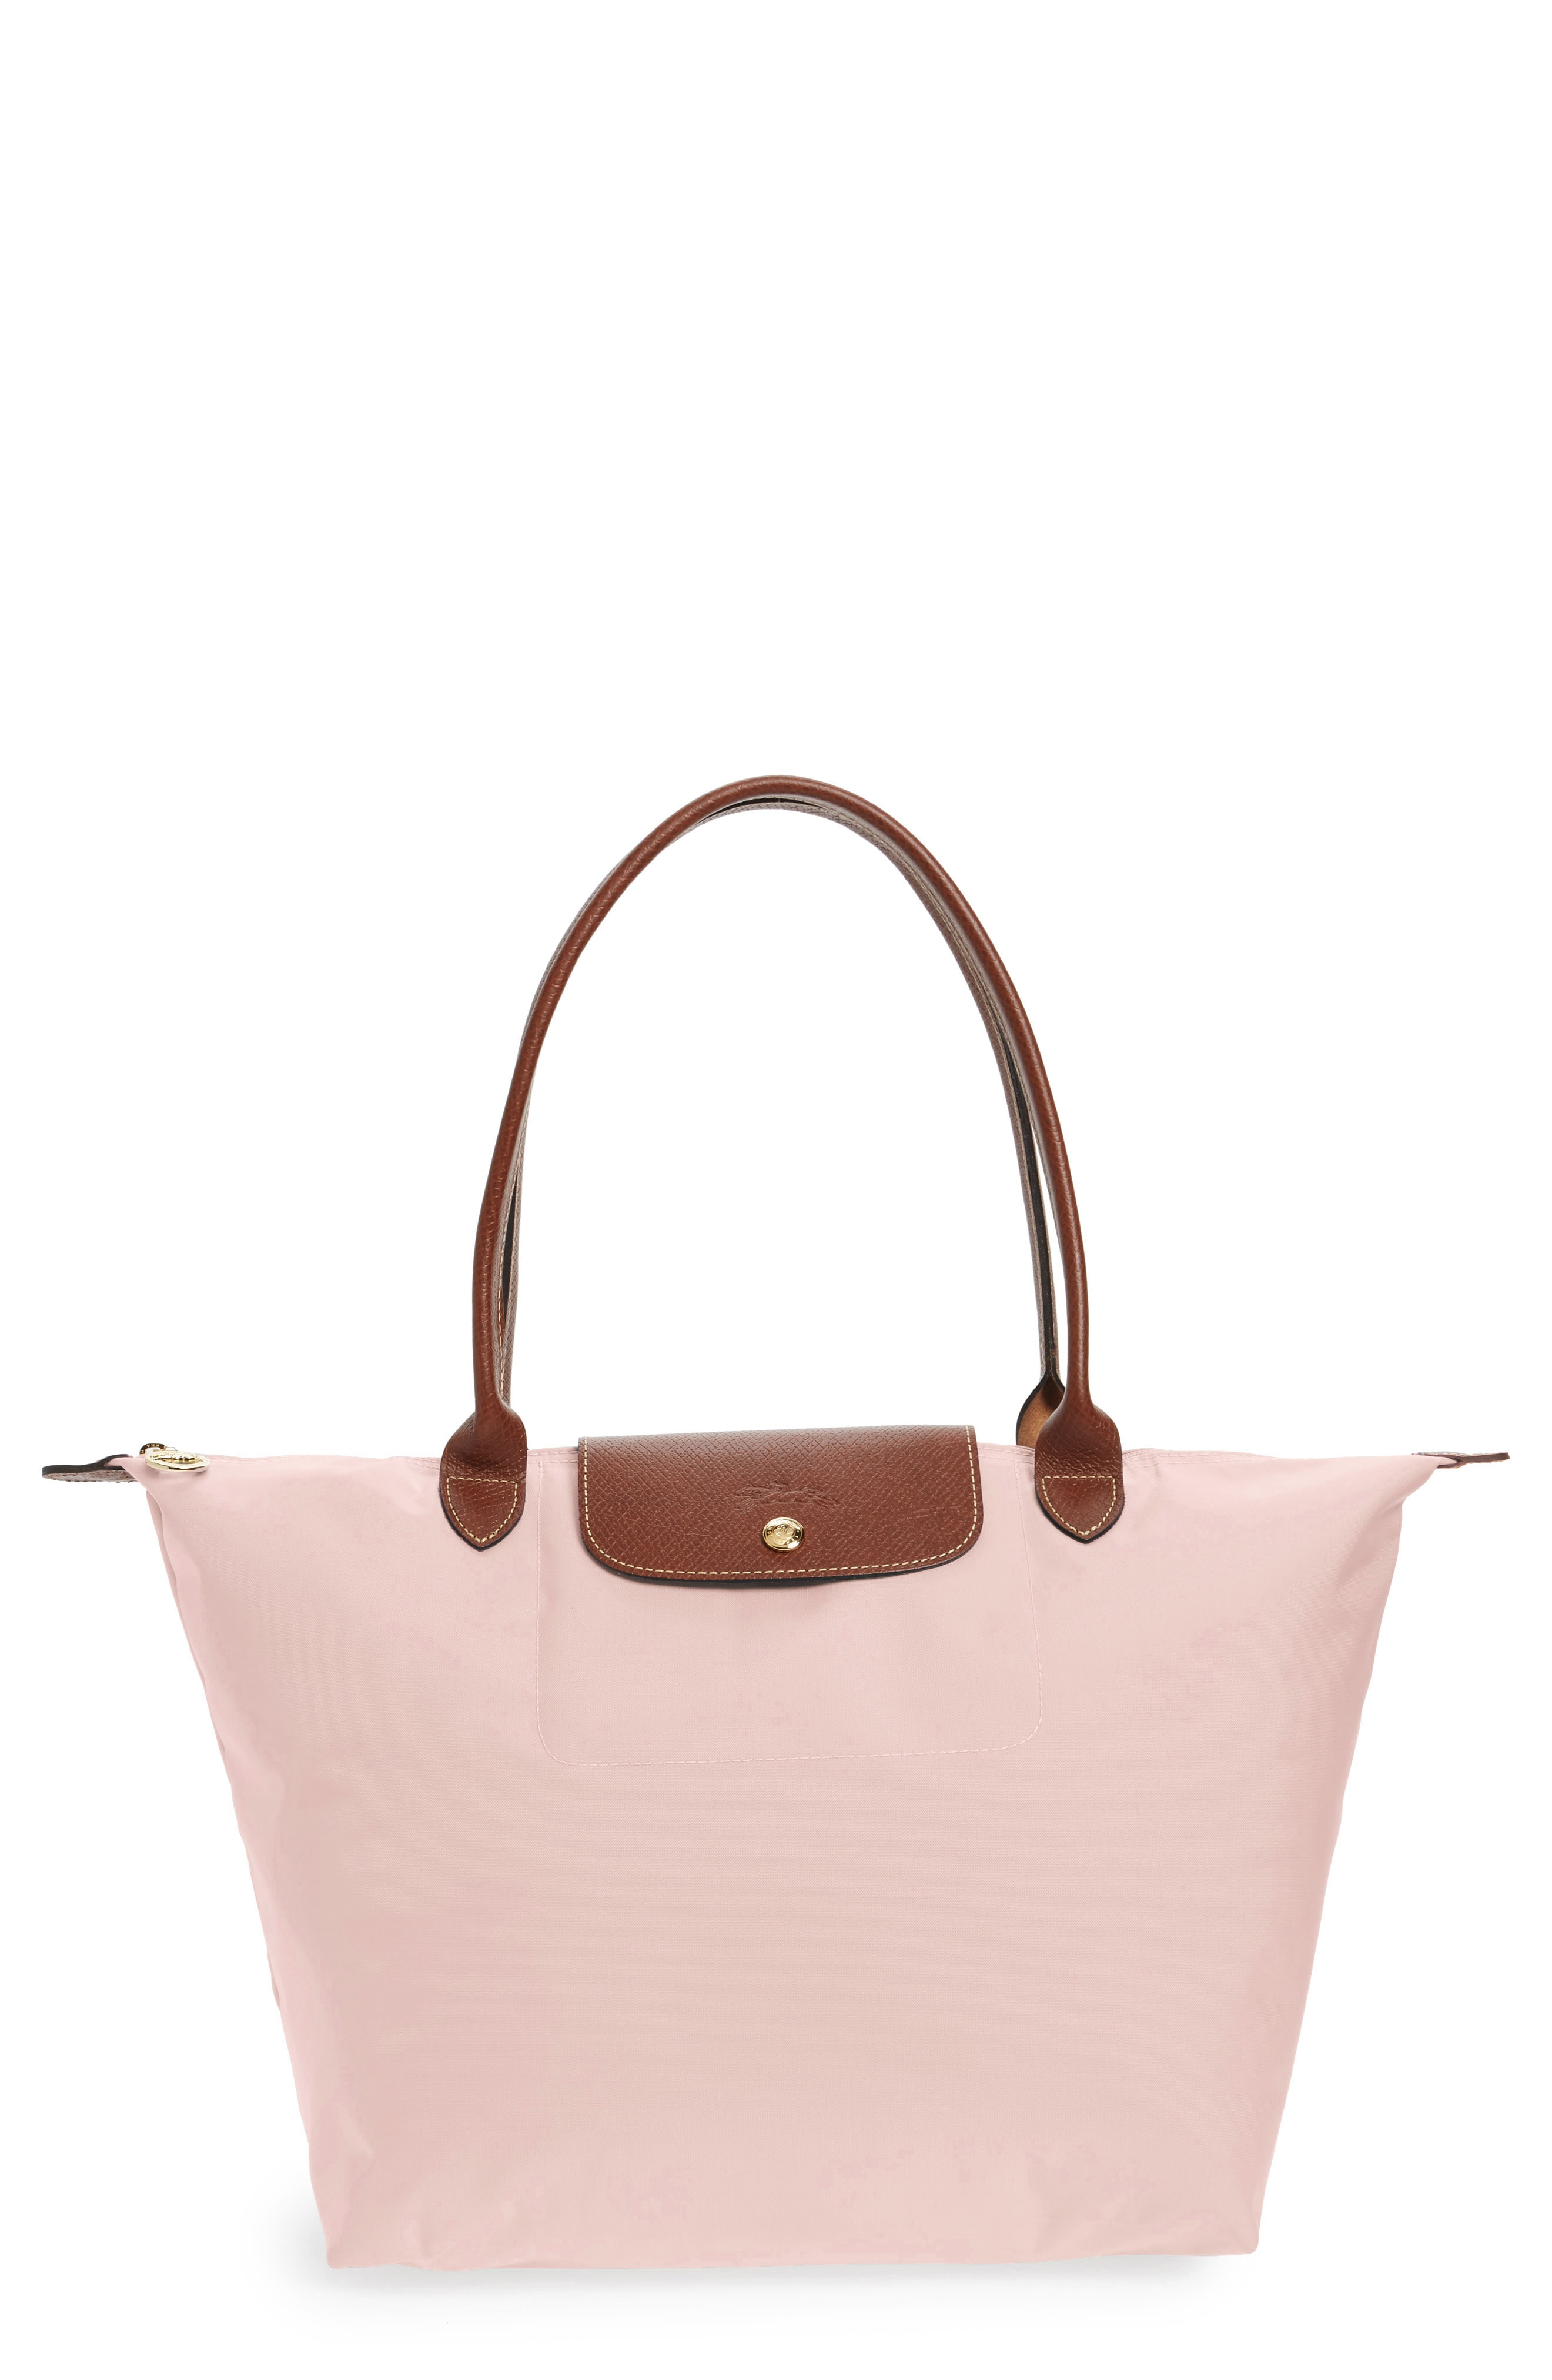 Tote Bags for Women: Leather, Coated Canvas, & Neoprene | Nordstrom